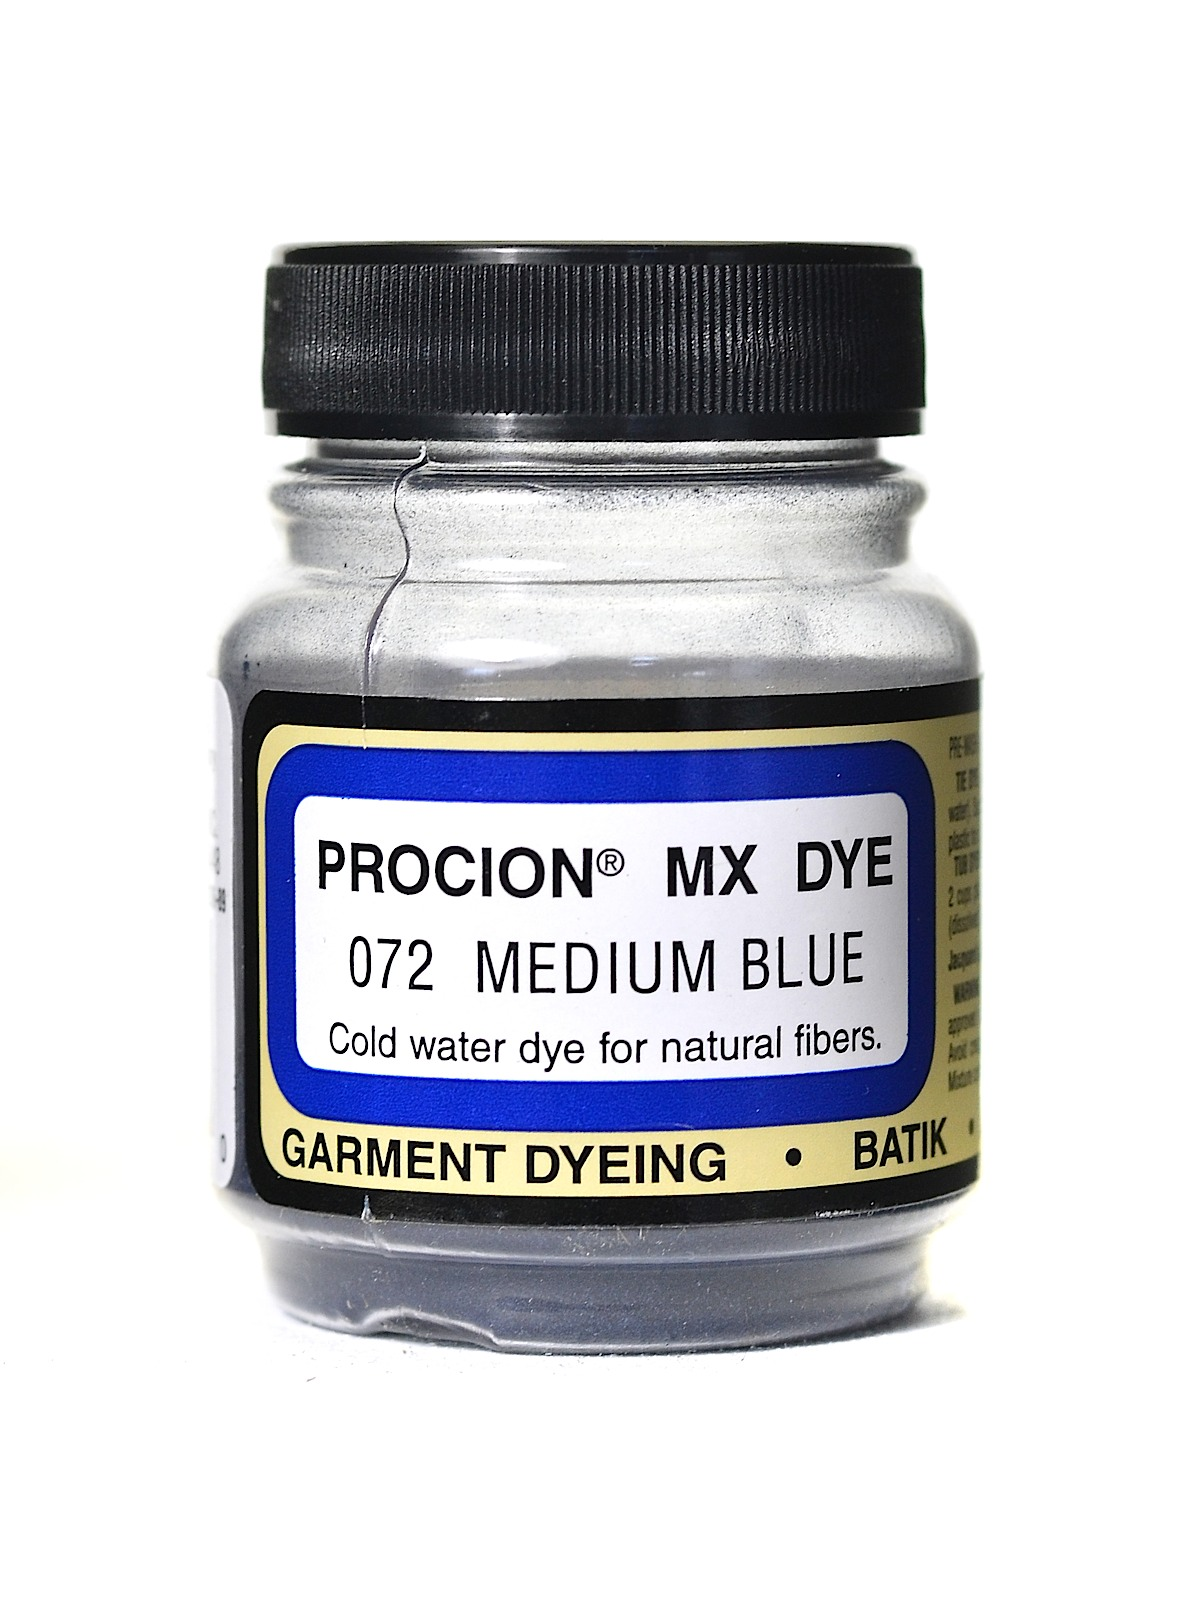 Jacquard Procion MX dye 2072 medium blue